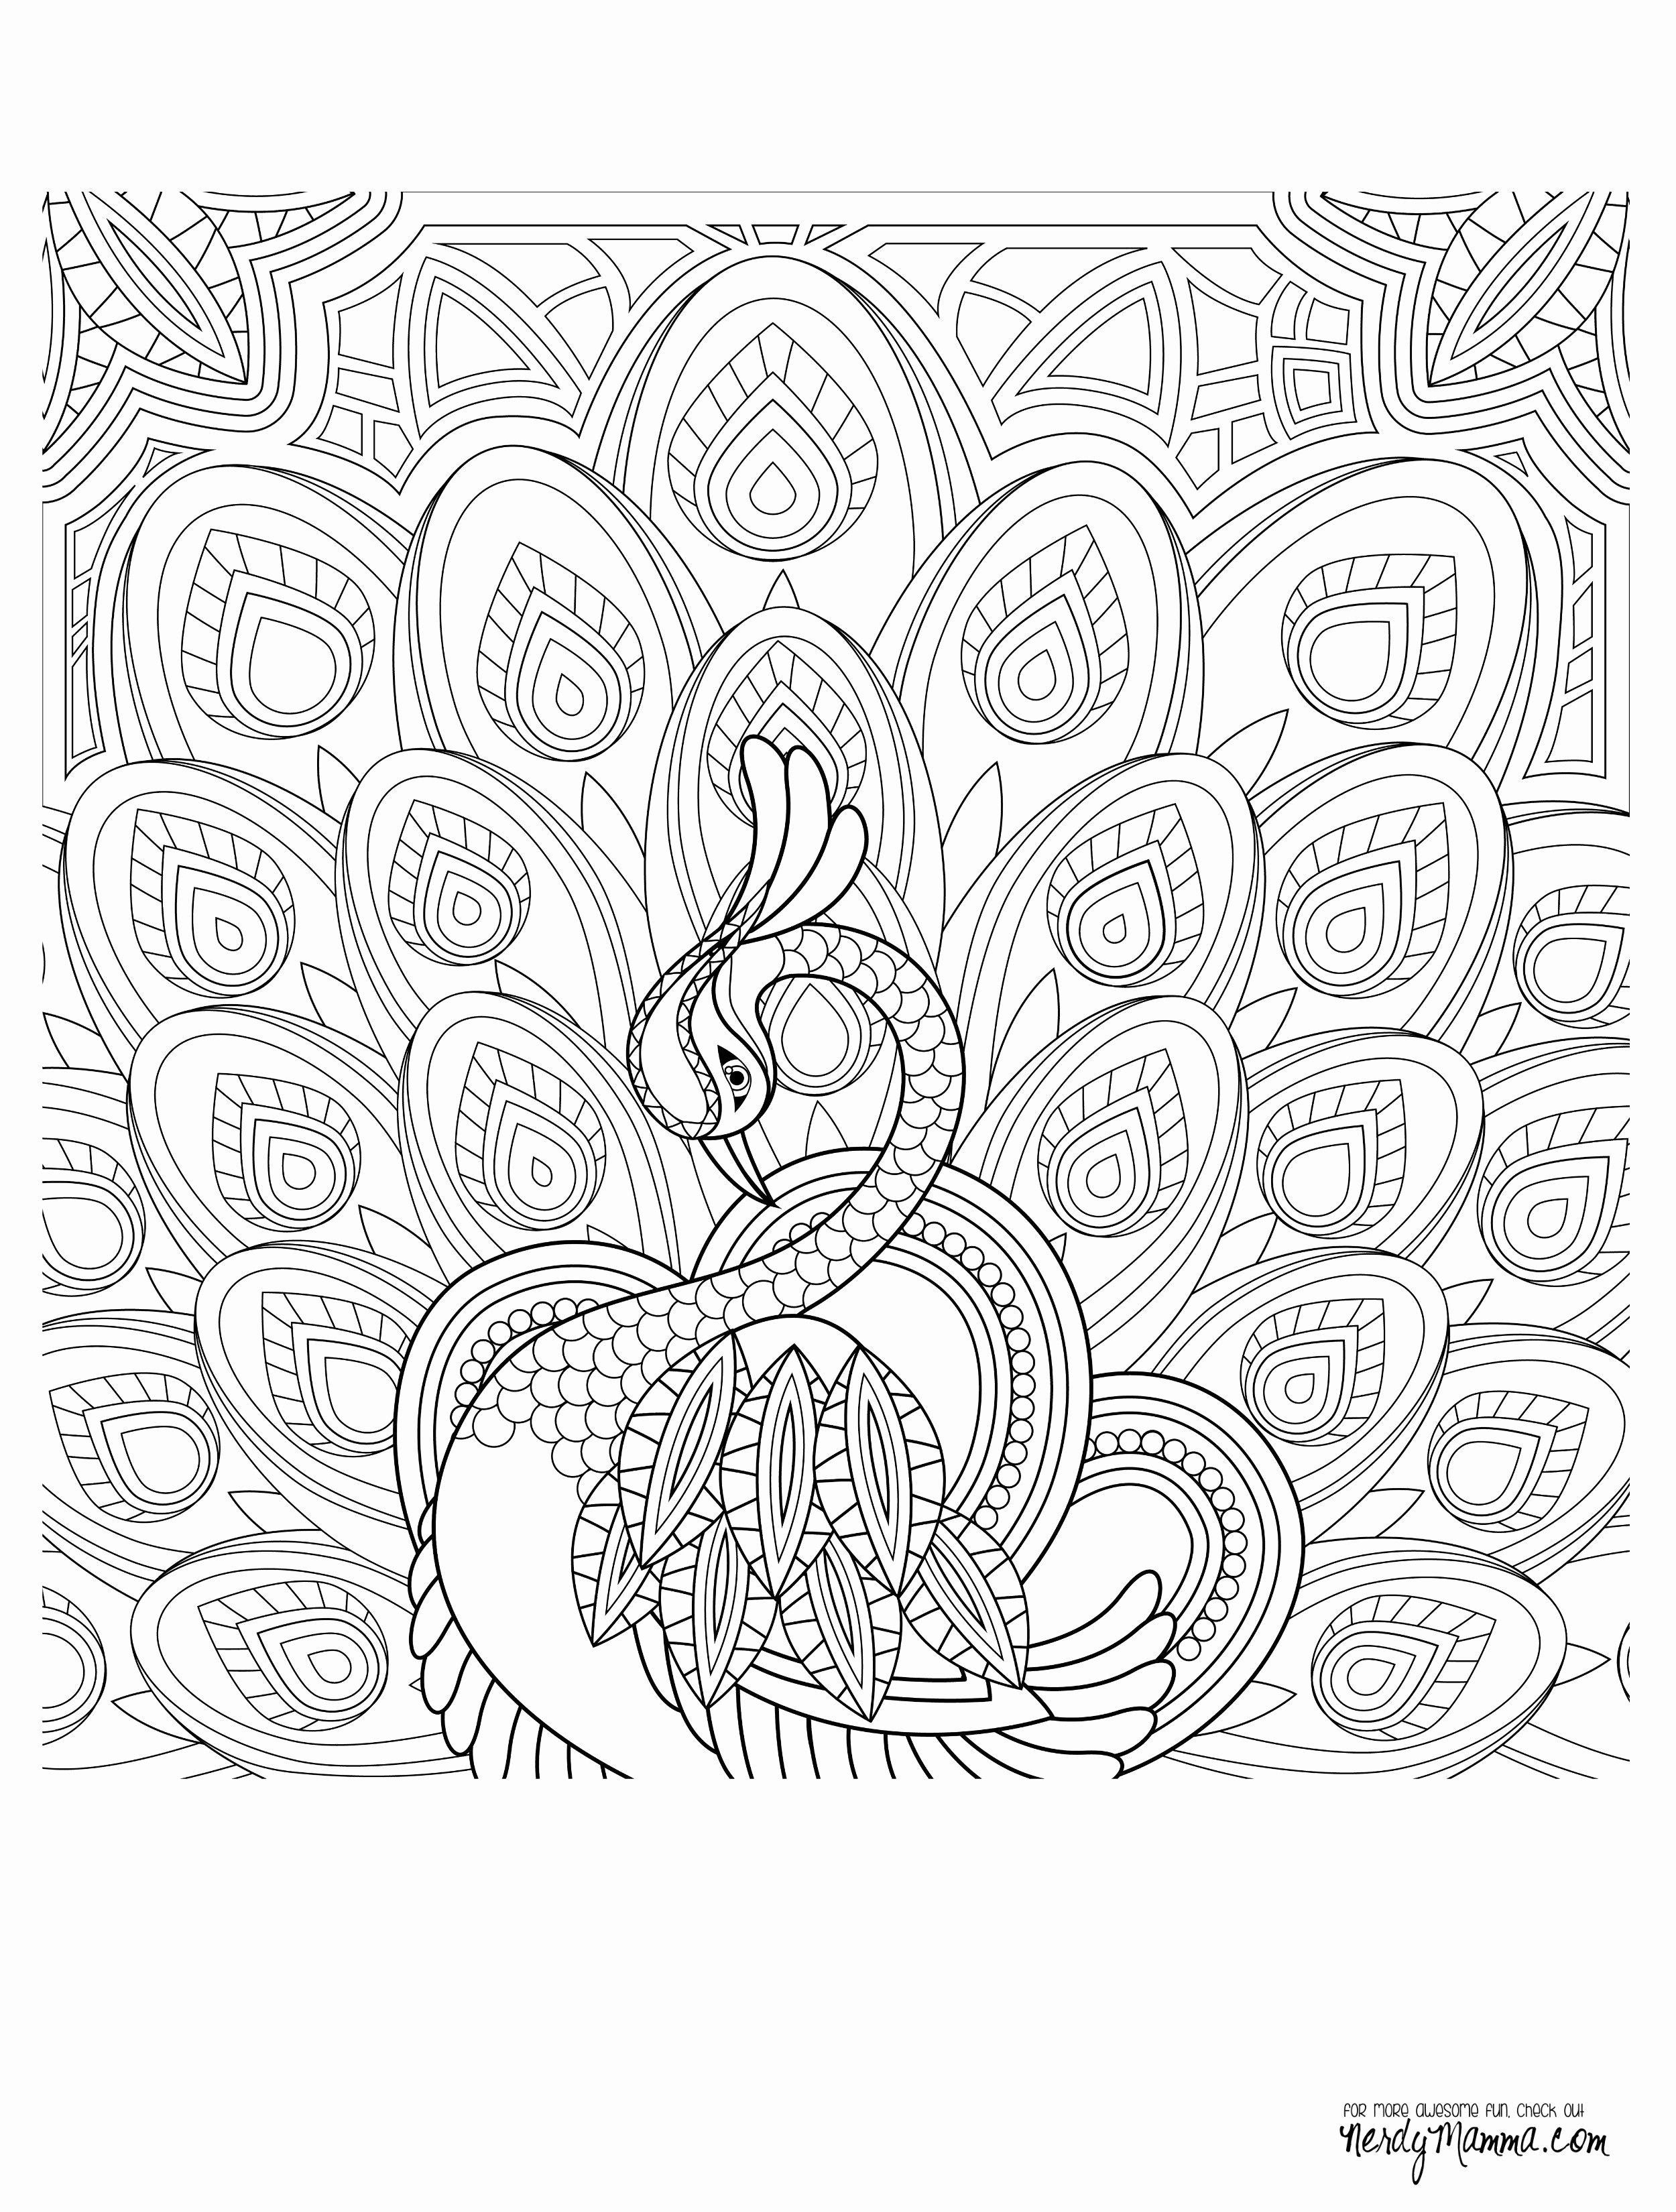 28 Free Animal Coloring Pages for Kids Download